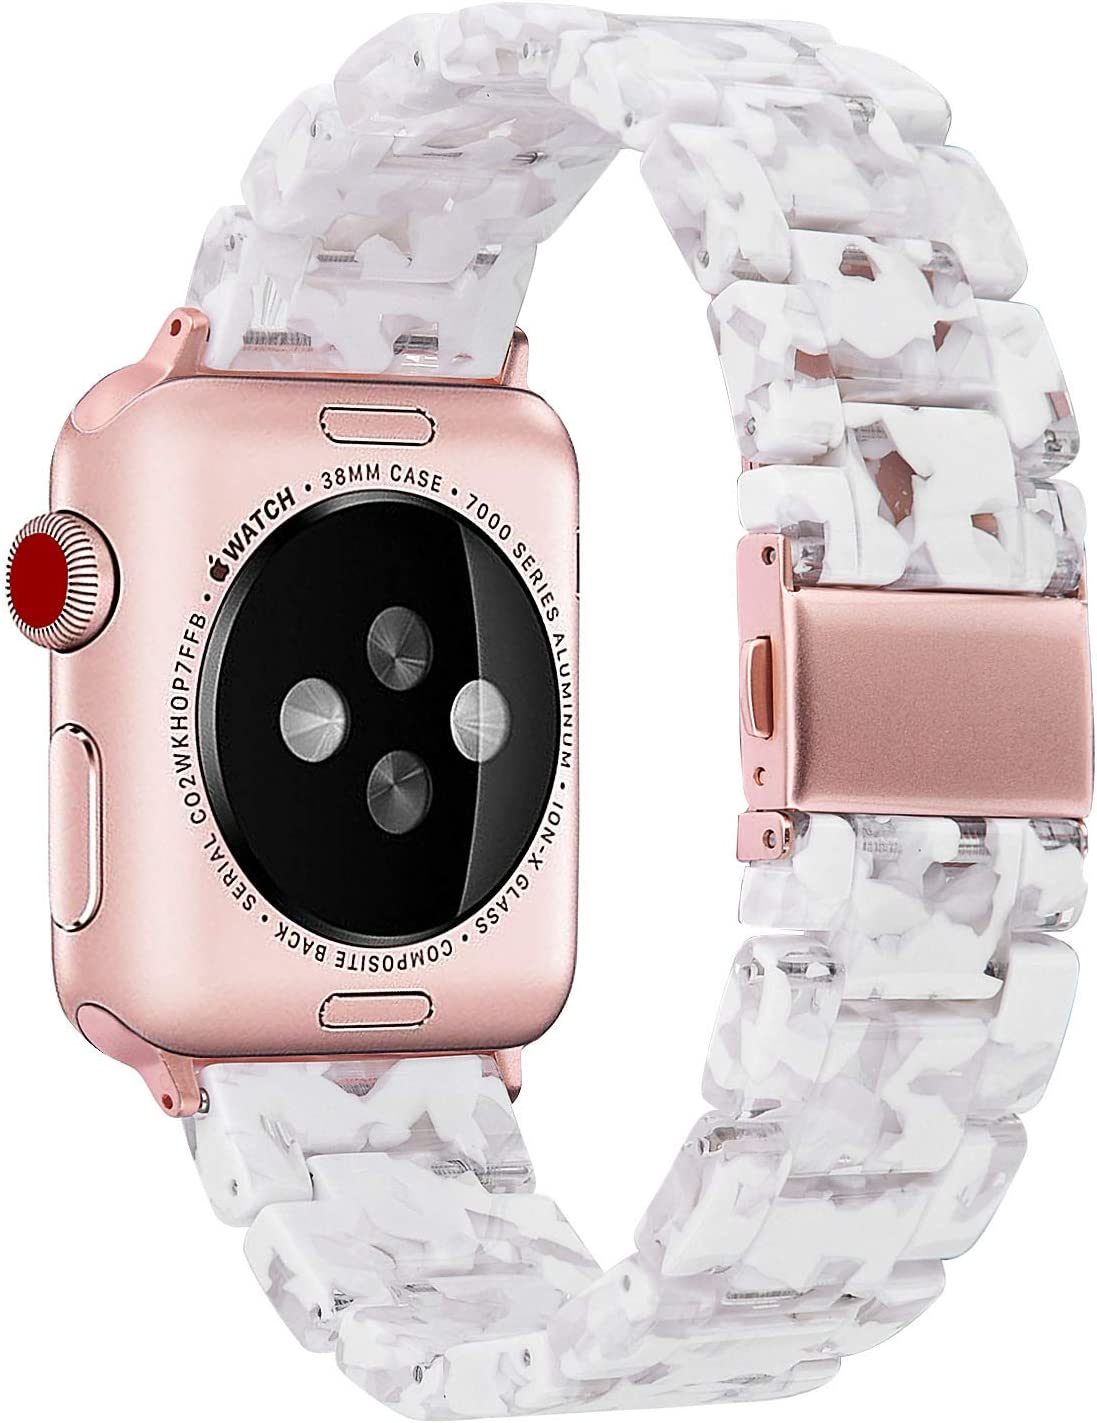 V-MORO Resin Strap Compatible with Apple Watch Band 38mm 40mm Series 5/4/3/2/1 Women Men with Stainless Steel Buckle, Apple iWatch Replacement Wristband Bracelet-Floral White